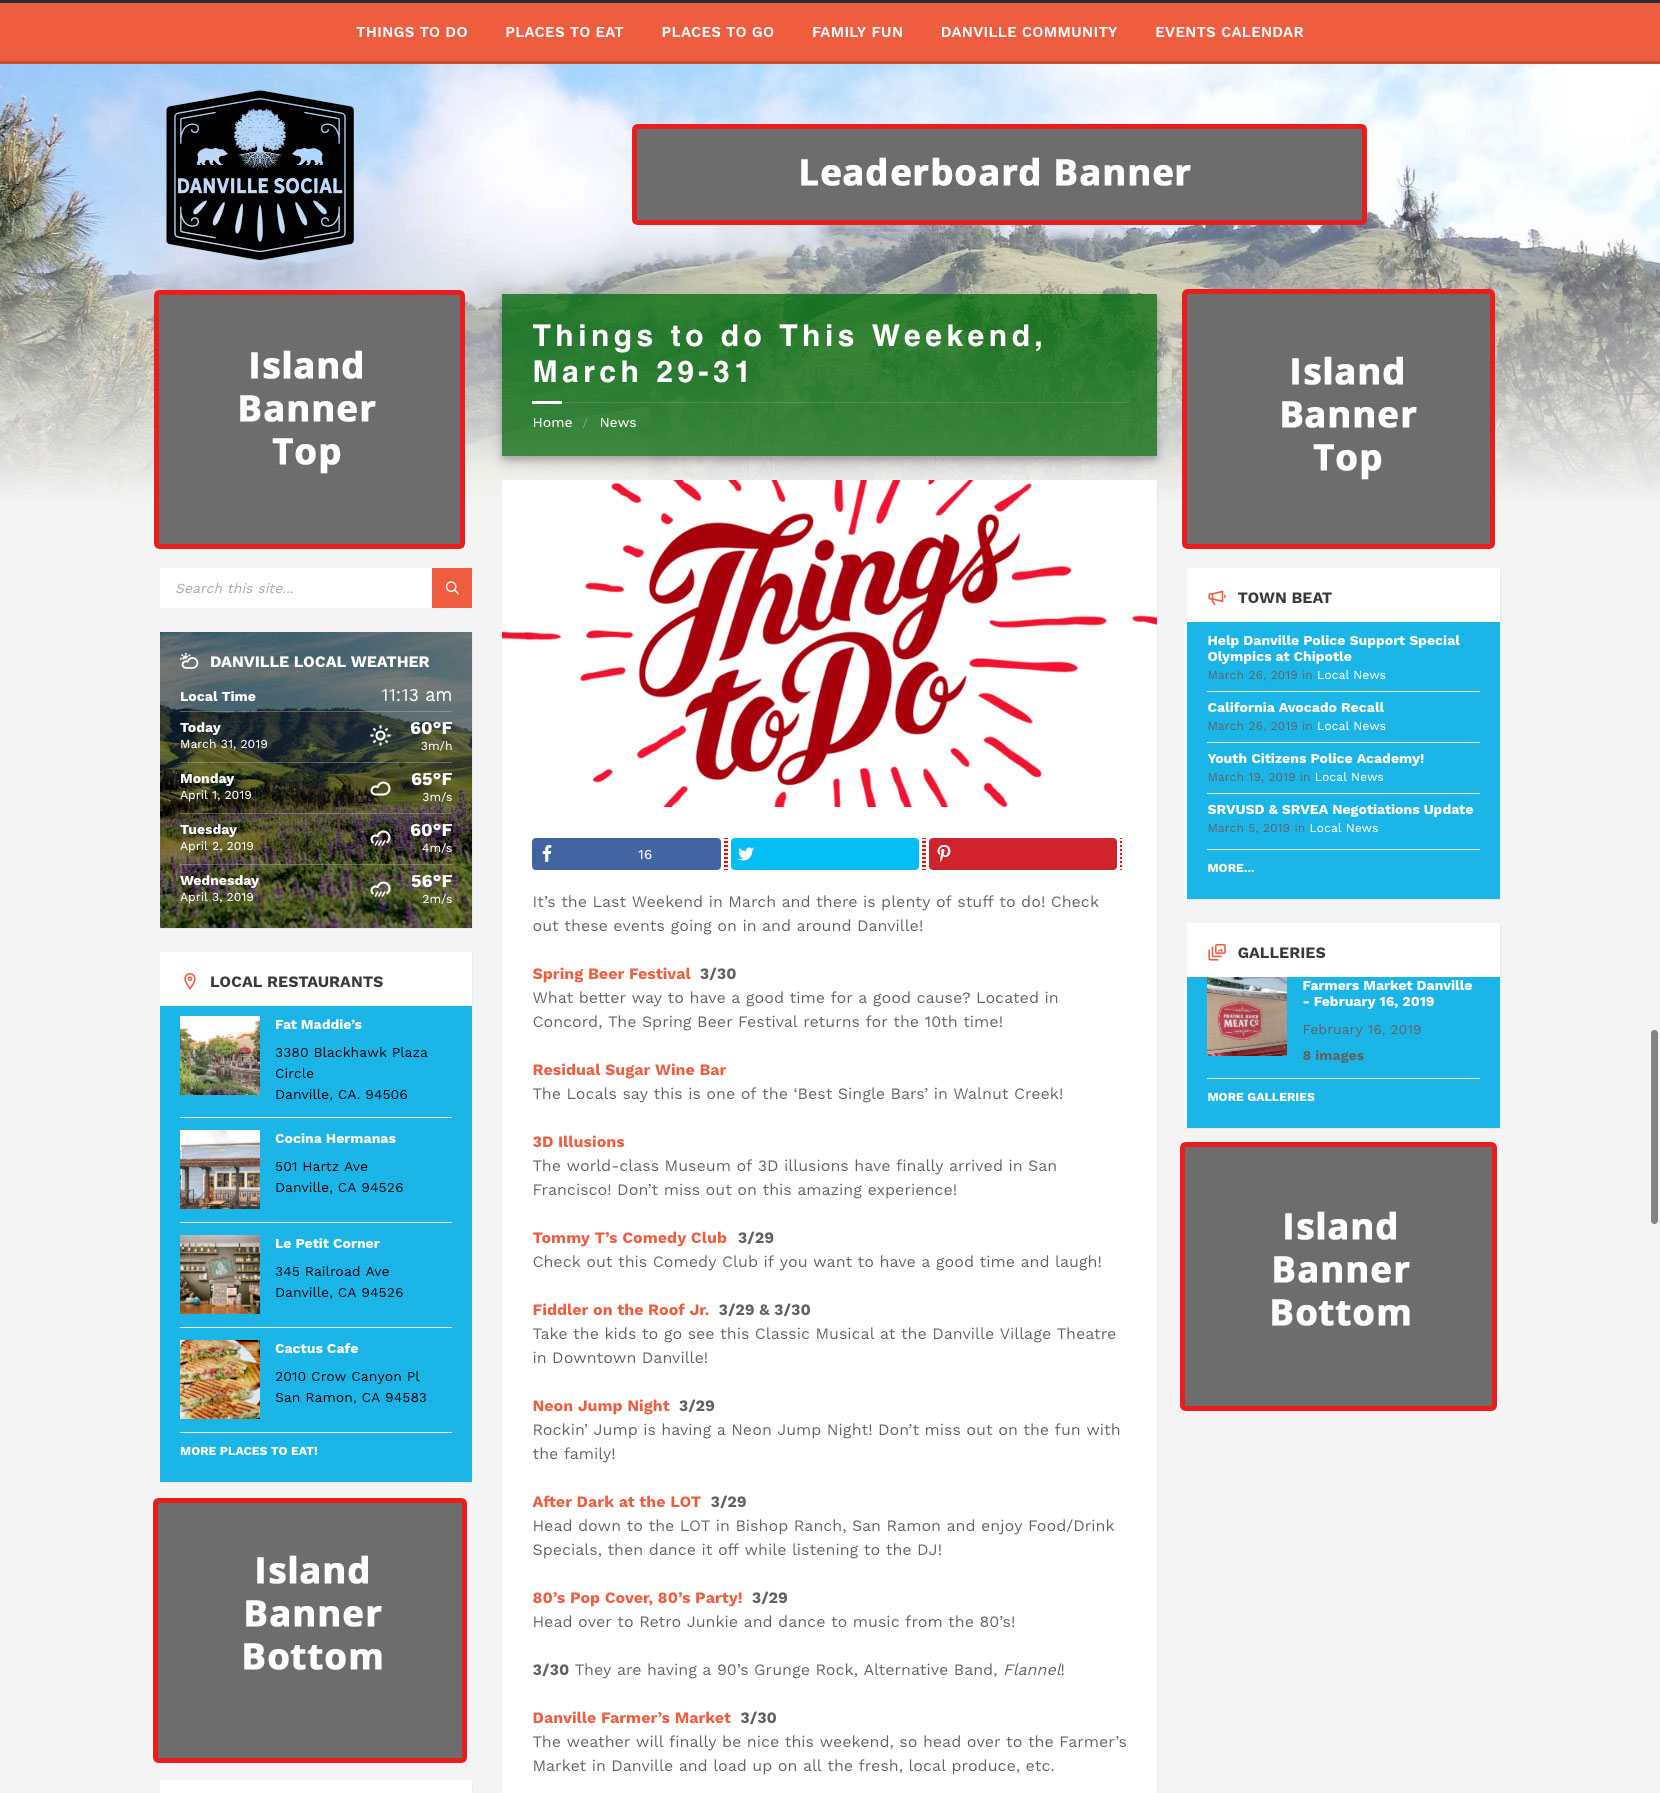 Advertise Your Business with Danville Social